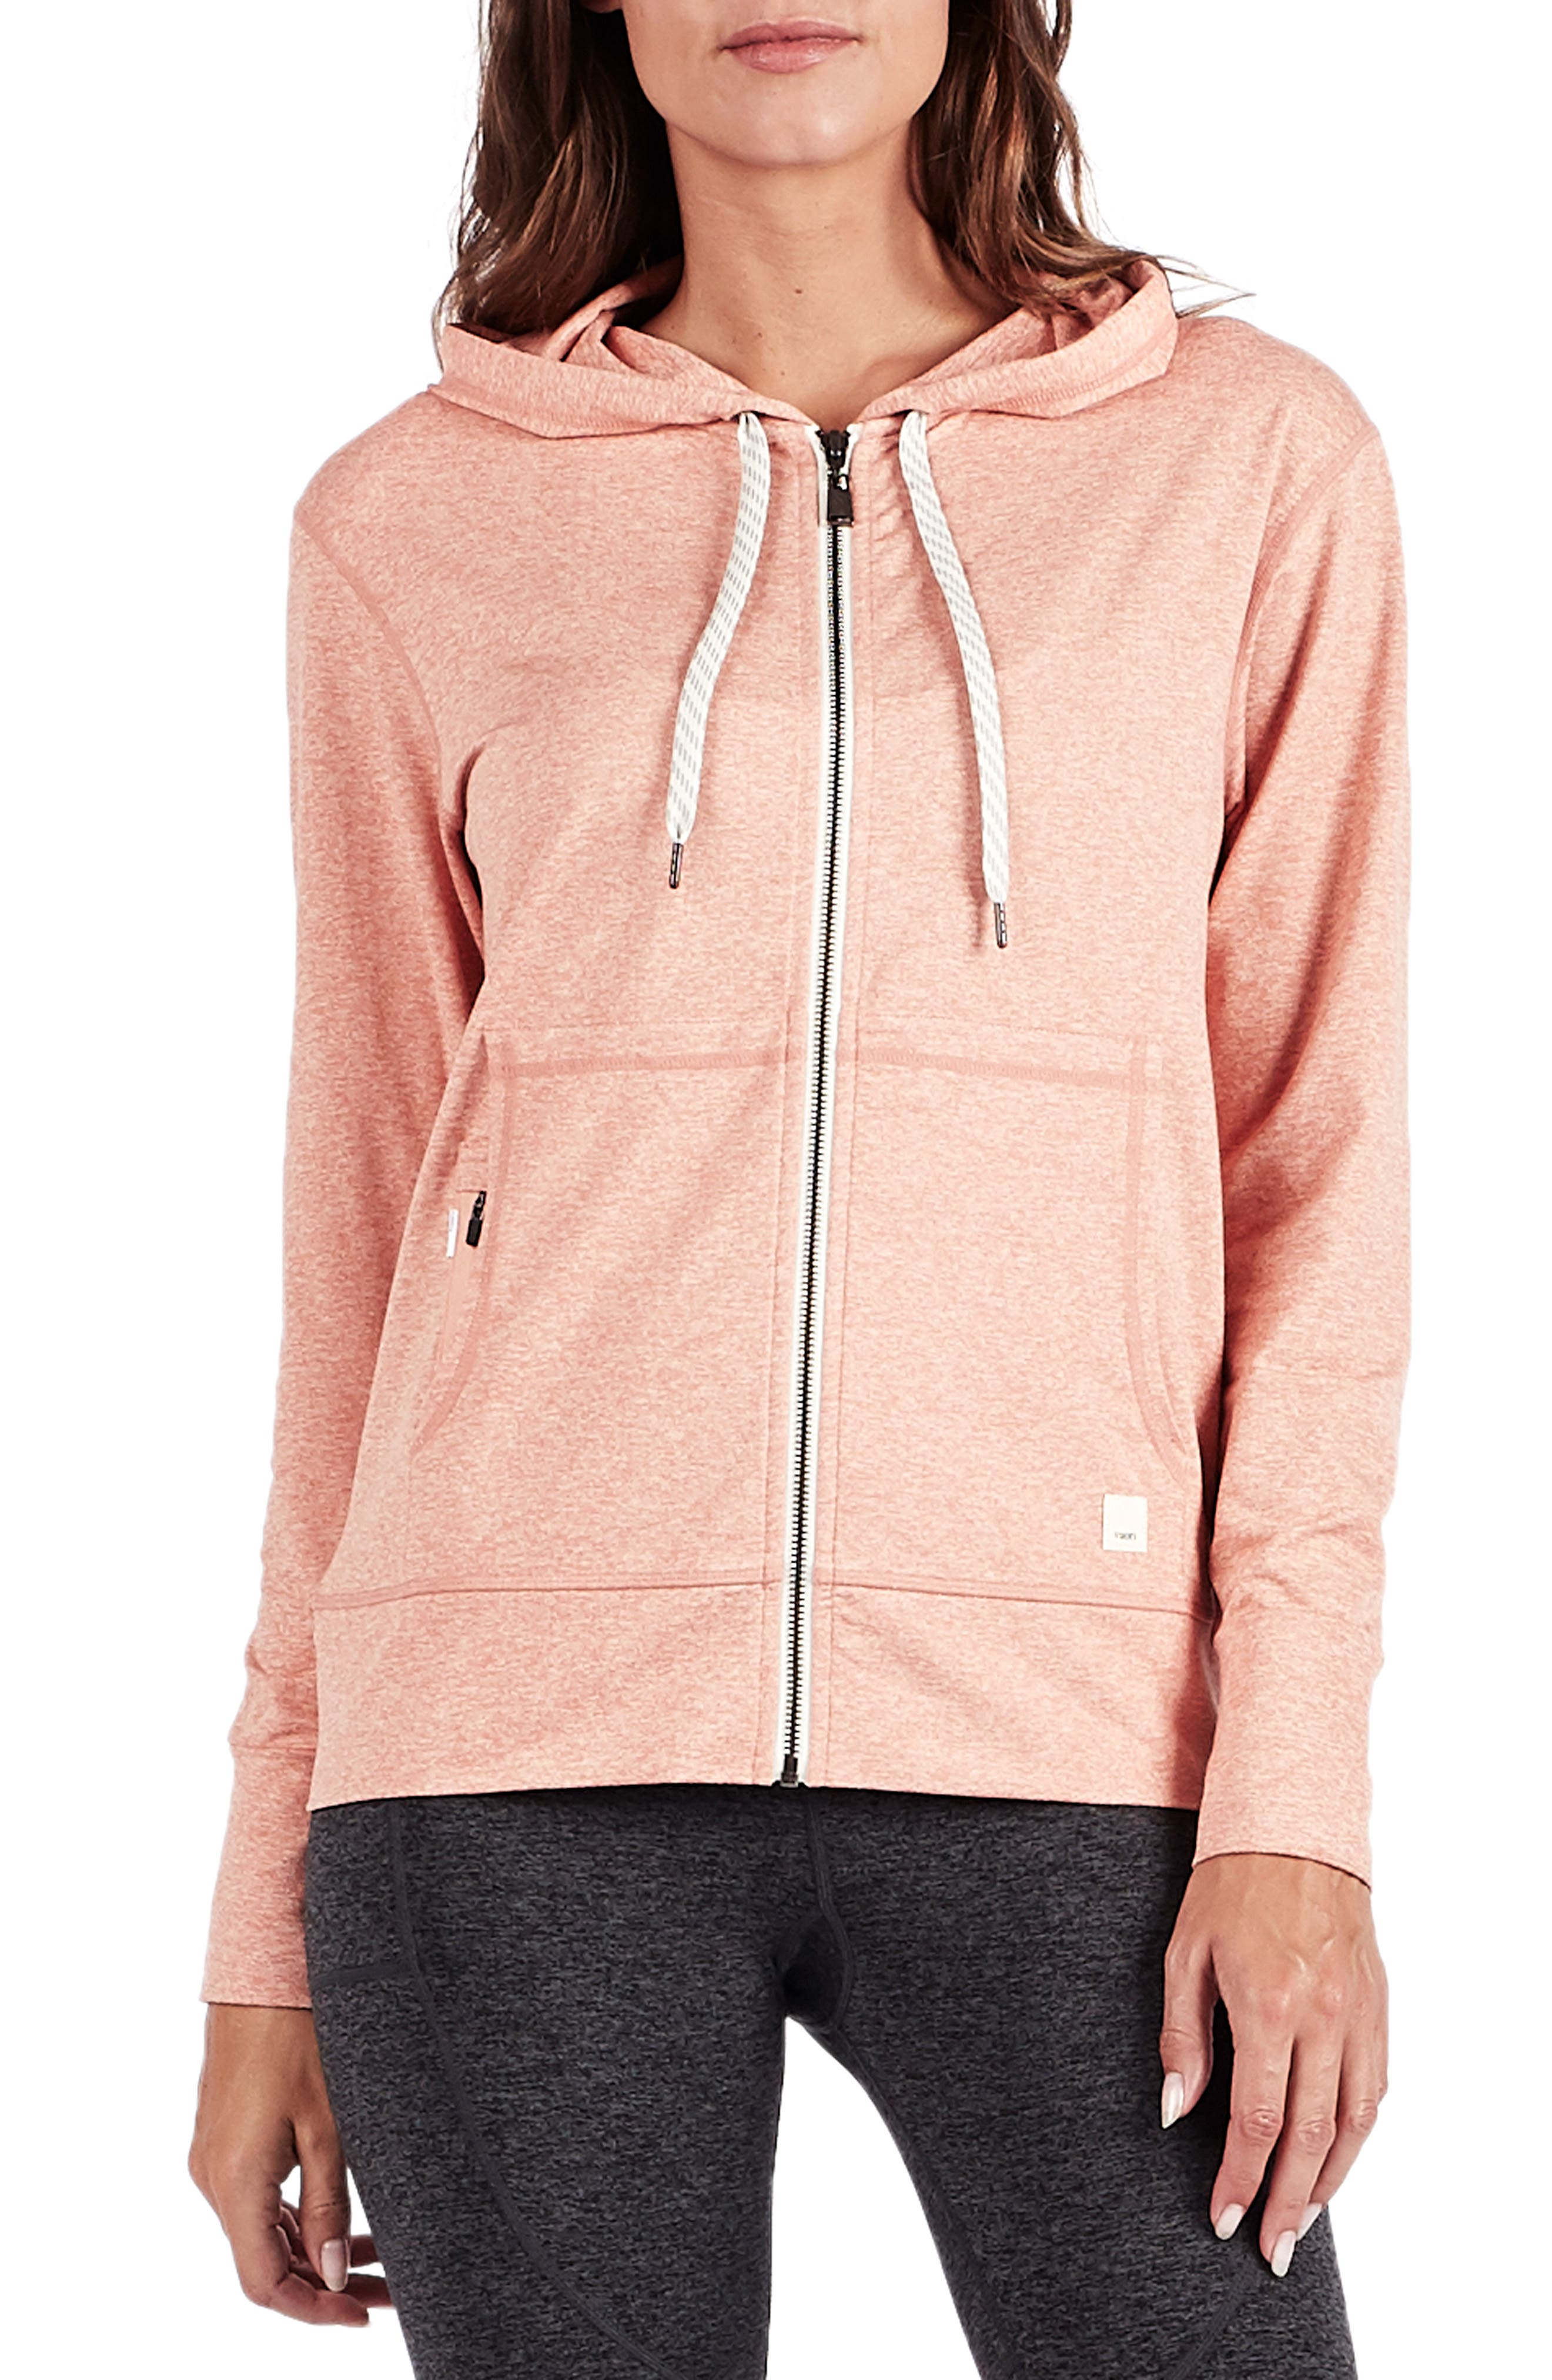 Vuori Performance Zip Front Hoodie, Orange